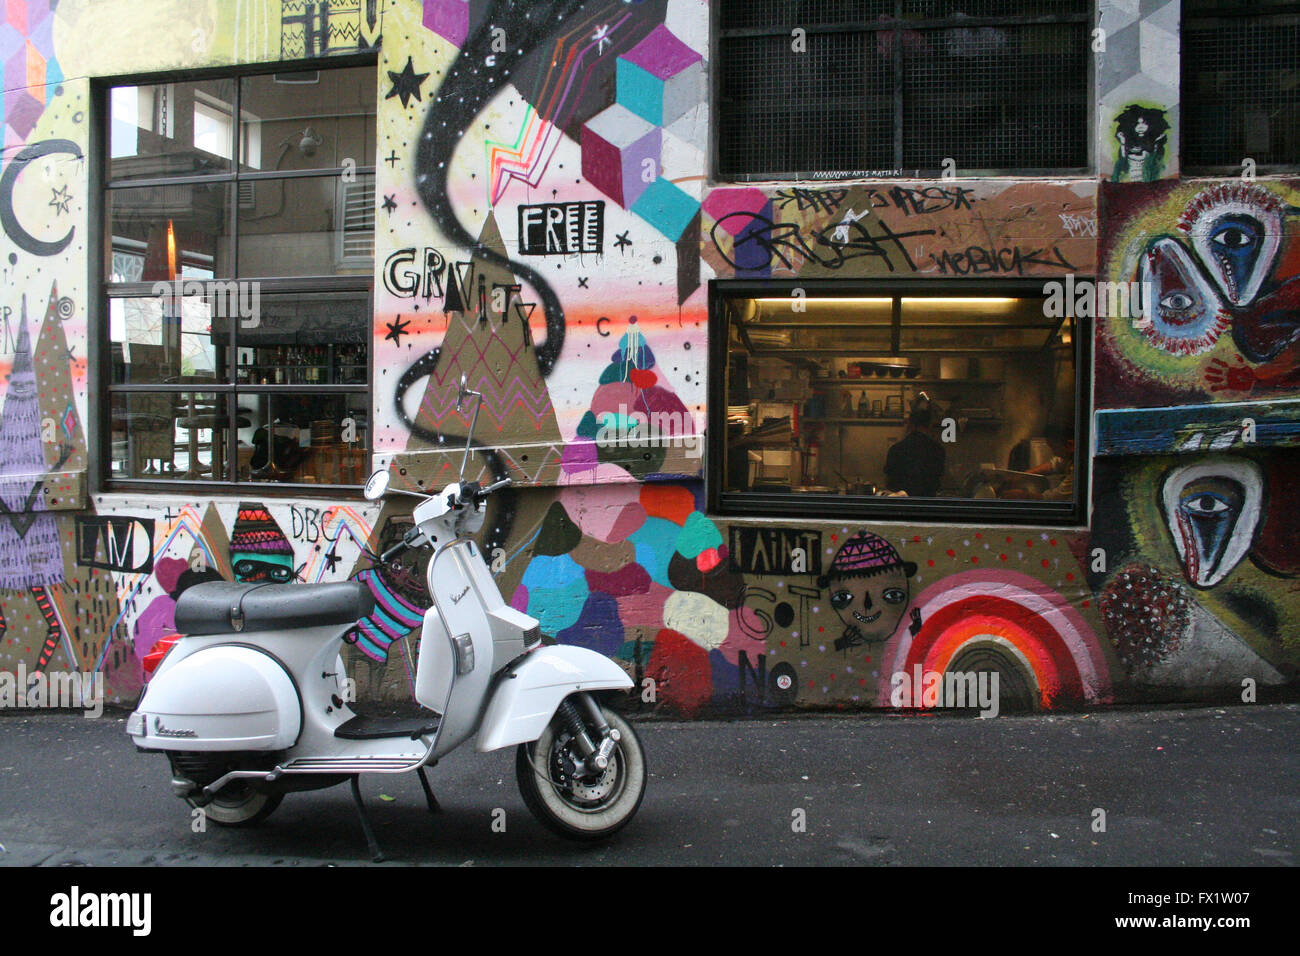 White Vespa Scooter Parked In Melbourne S City Laneway With Street